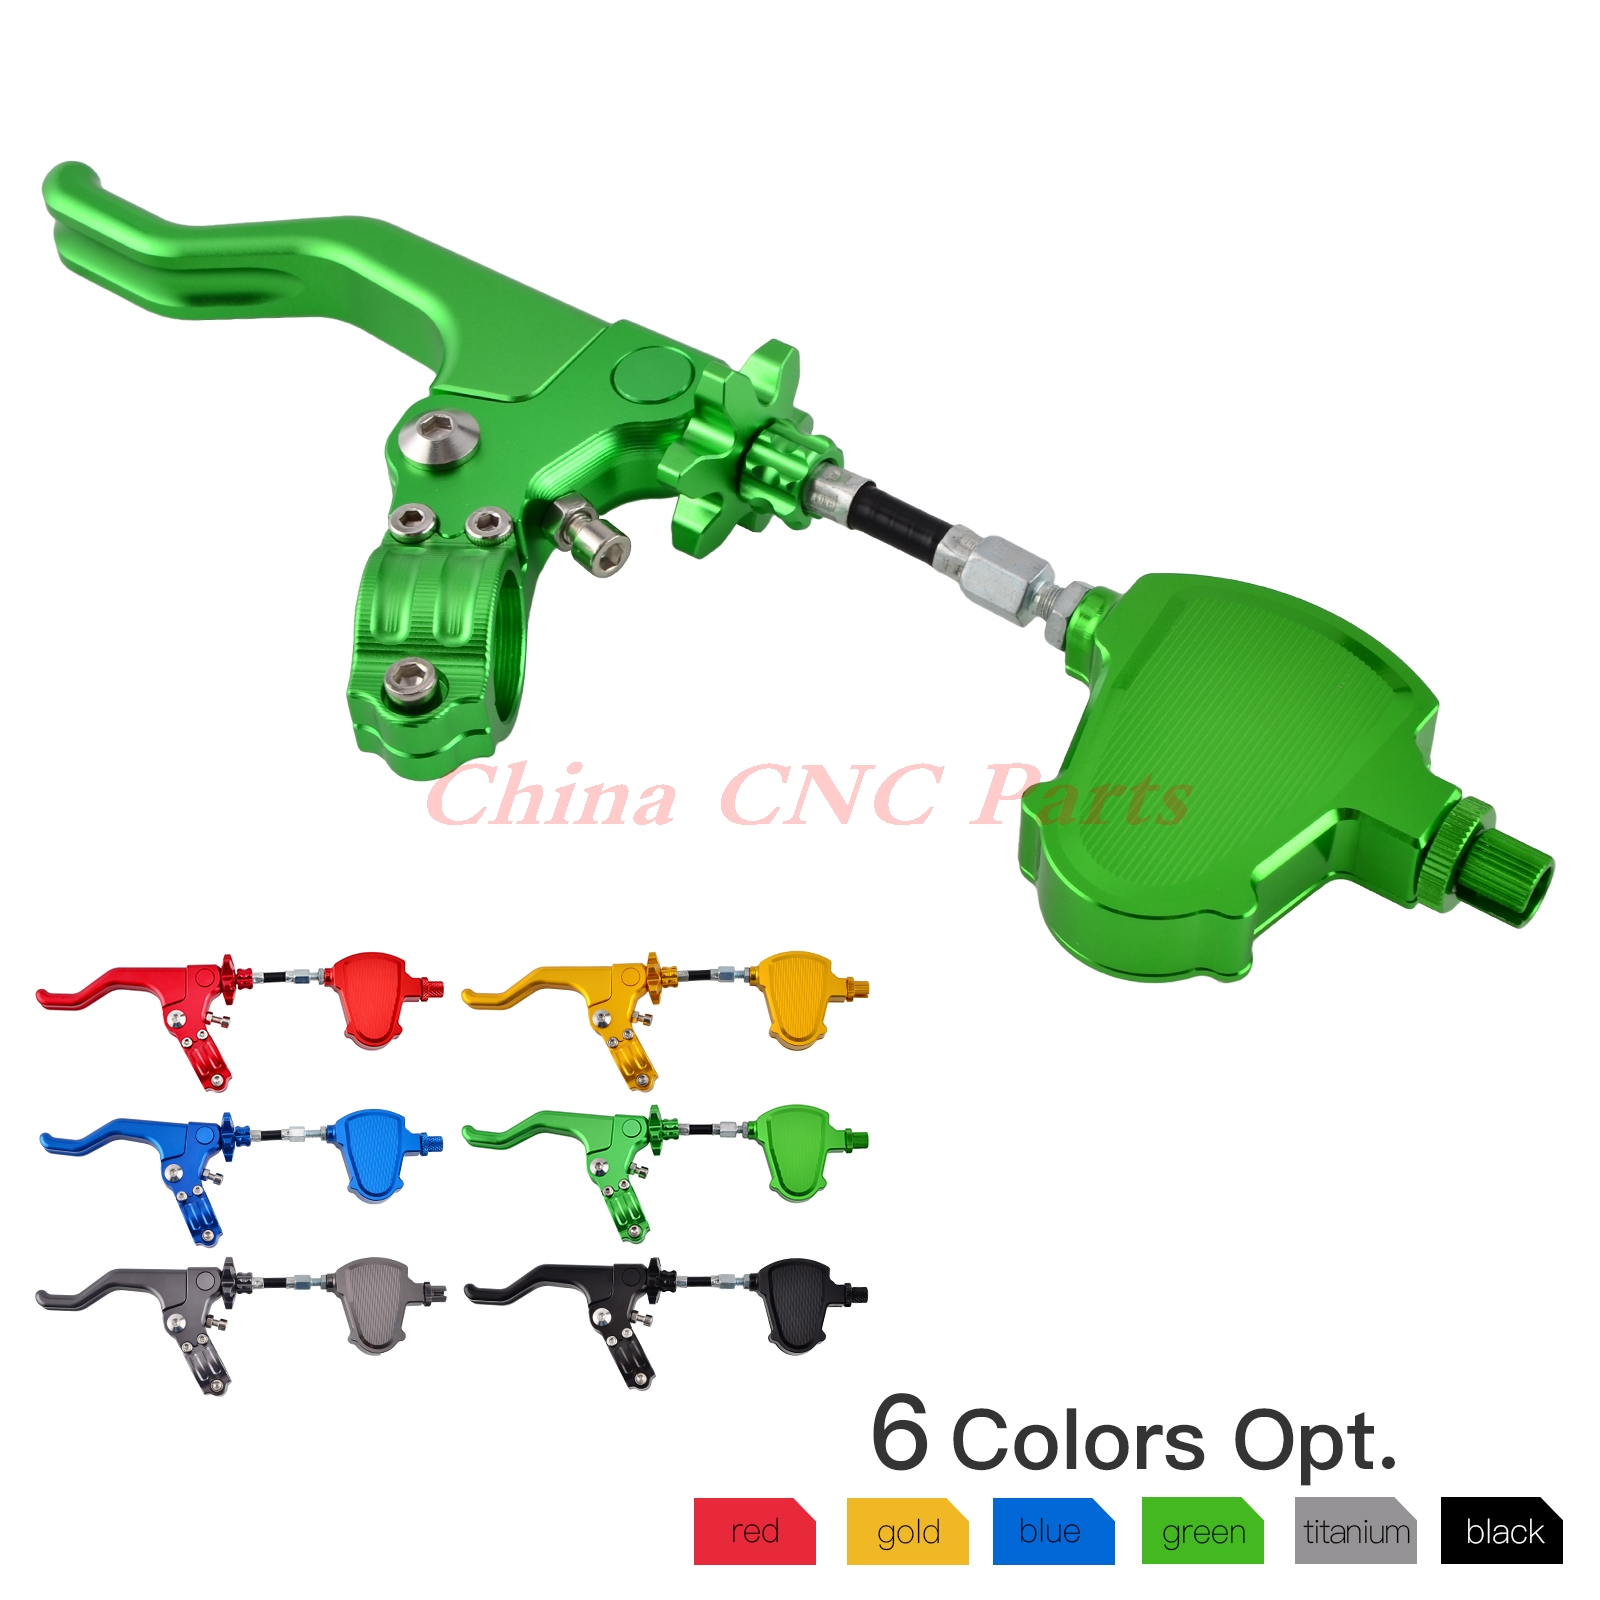 NICECNC Stunt Clutch Pull Cable Lever Replacement Easy System For Kawasaki KX KLX 125 250 Z800 Z900 Z1000 Z750 ZX6R ZX10R ER6F/N fxcnc universal stunt clutch easy pull cable system motorcycles motocross for yamaha yz250 125 yz80 yz450fx wr250f wr426f wr450